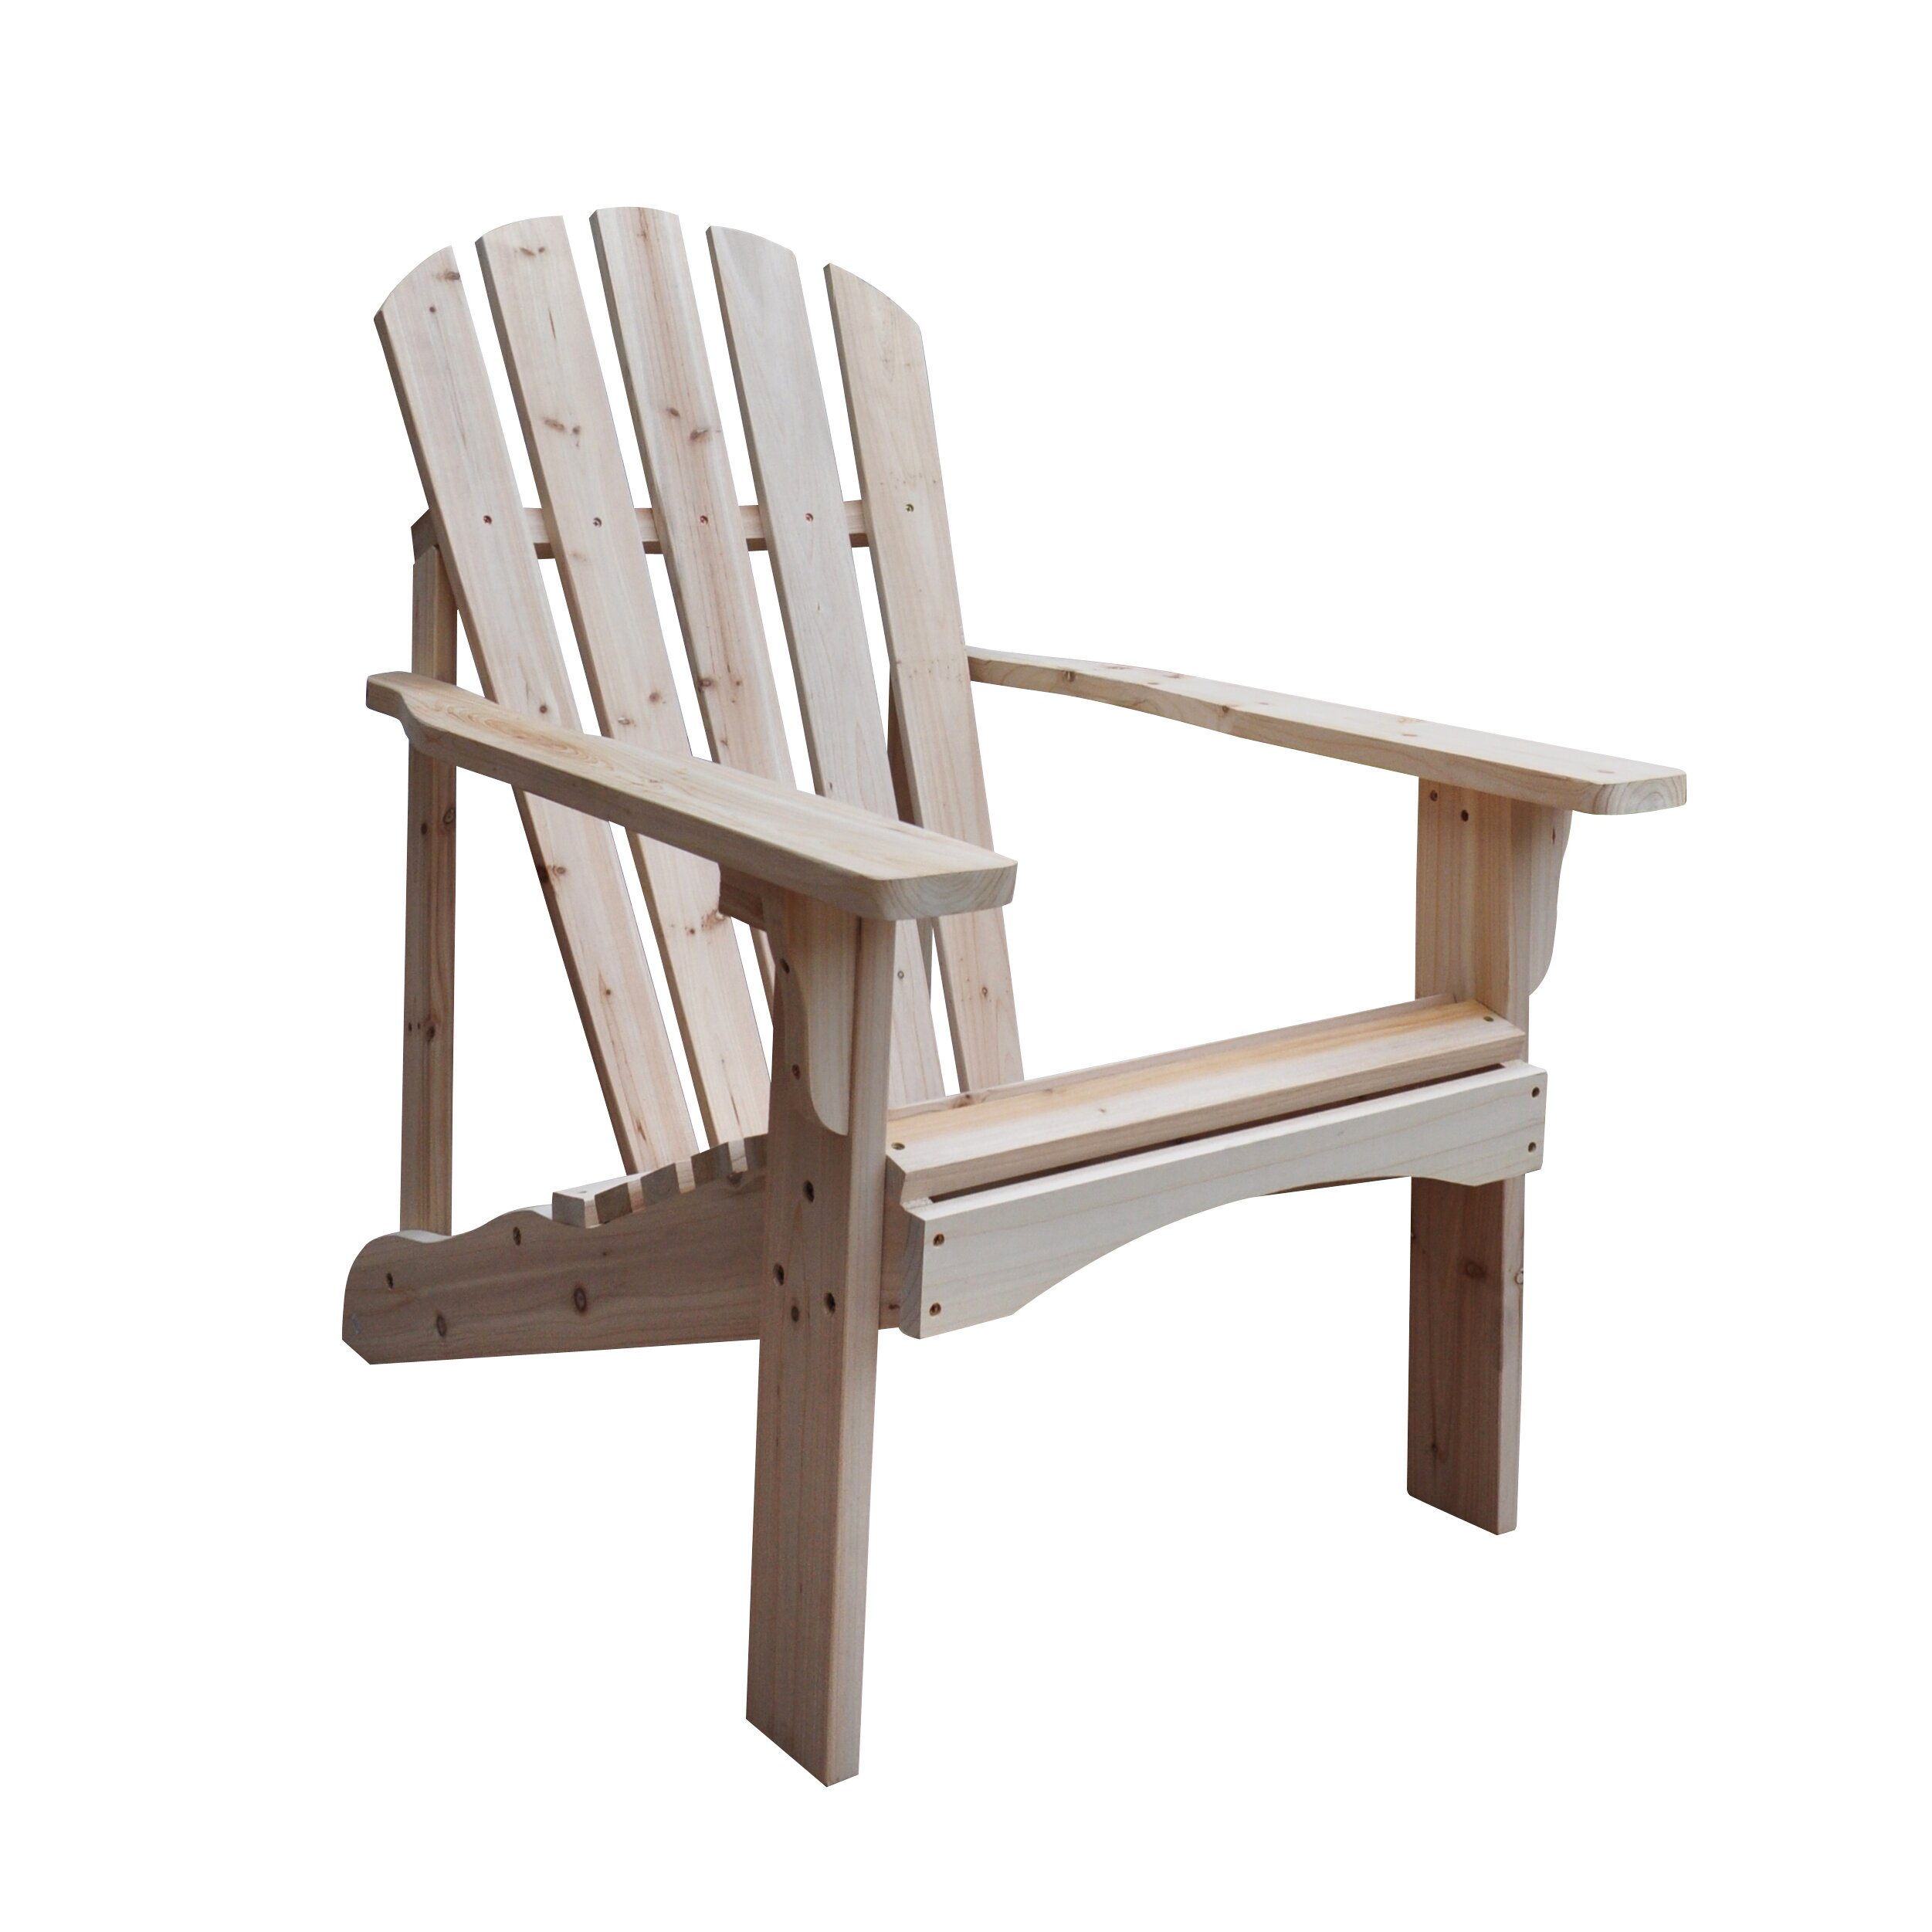 Amazing photo of Shine Company Inc. Rockport Adirondack Chair & Reviews Wayfair with #4E3328 color and 2502x2502 pixels